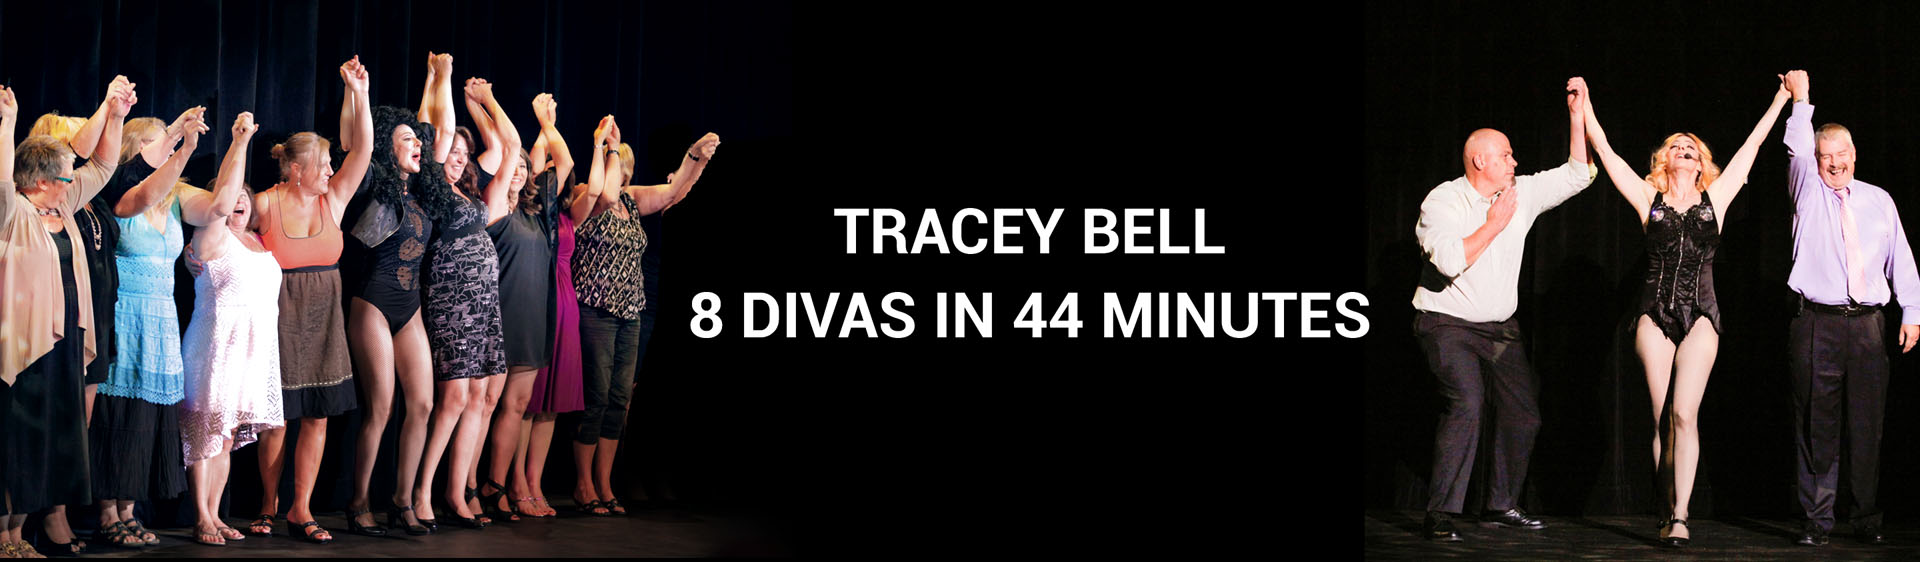 Tracey Bell - 8 Divas in 44 Minutes